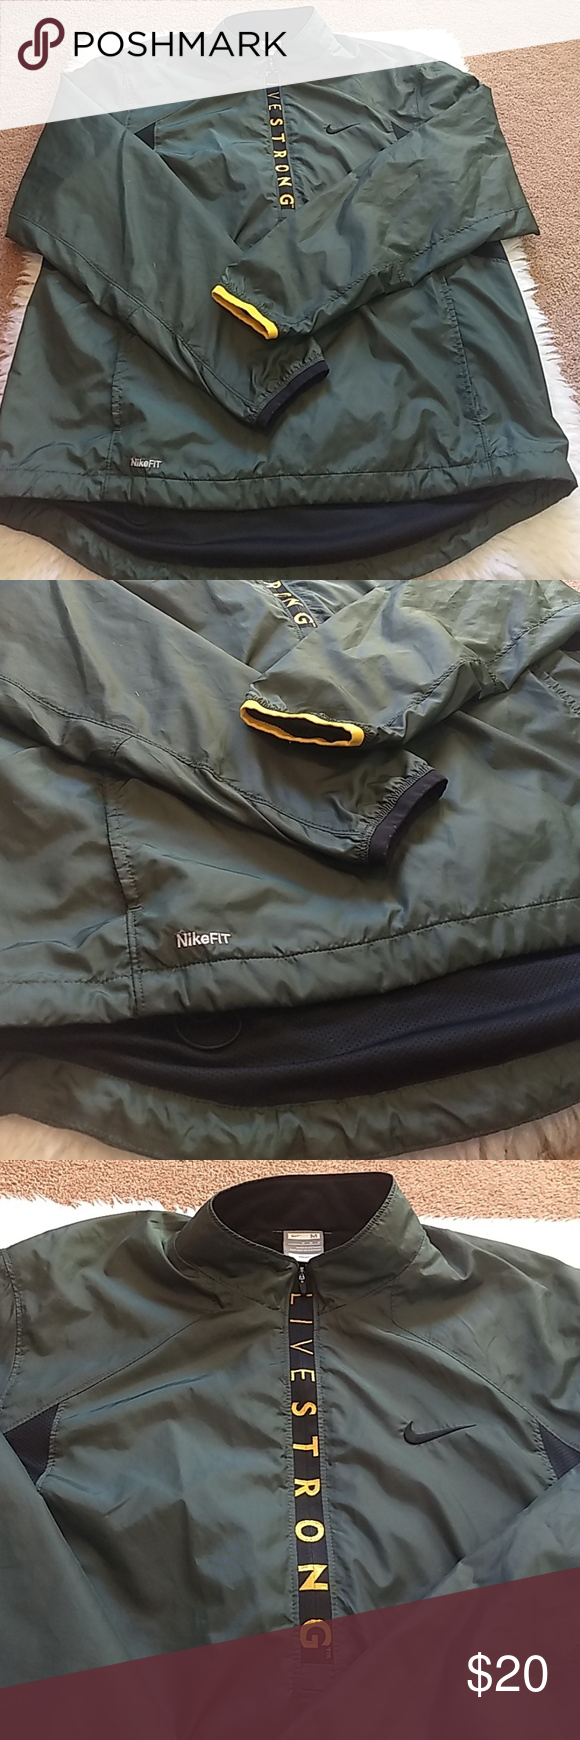 4e4b5e8b1719 Nike LiveSTRONG fitdry pullover SIZE (M) Hunter green with gold yellow .  Air vents on back. 3 4 zipper . Jacket is like new. Lightweight